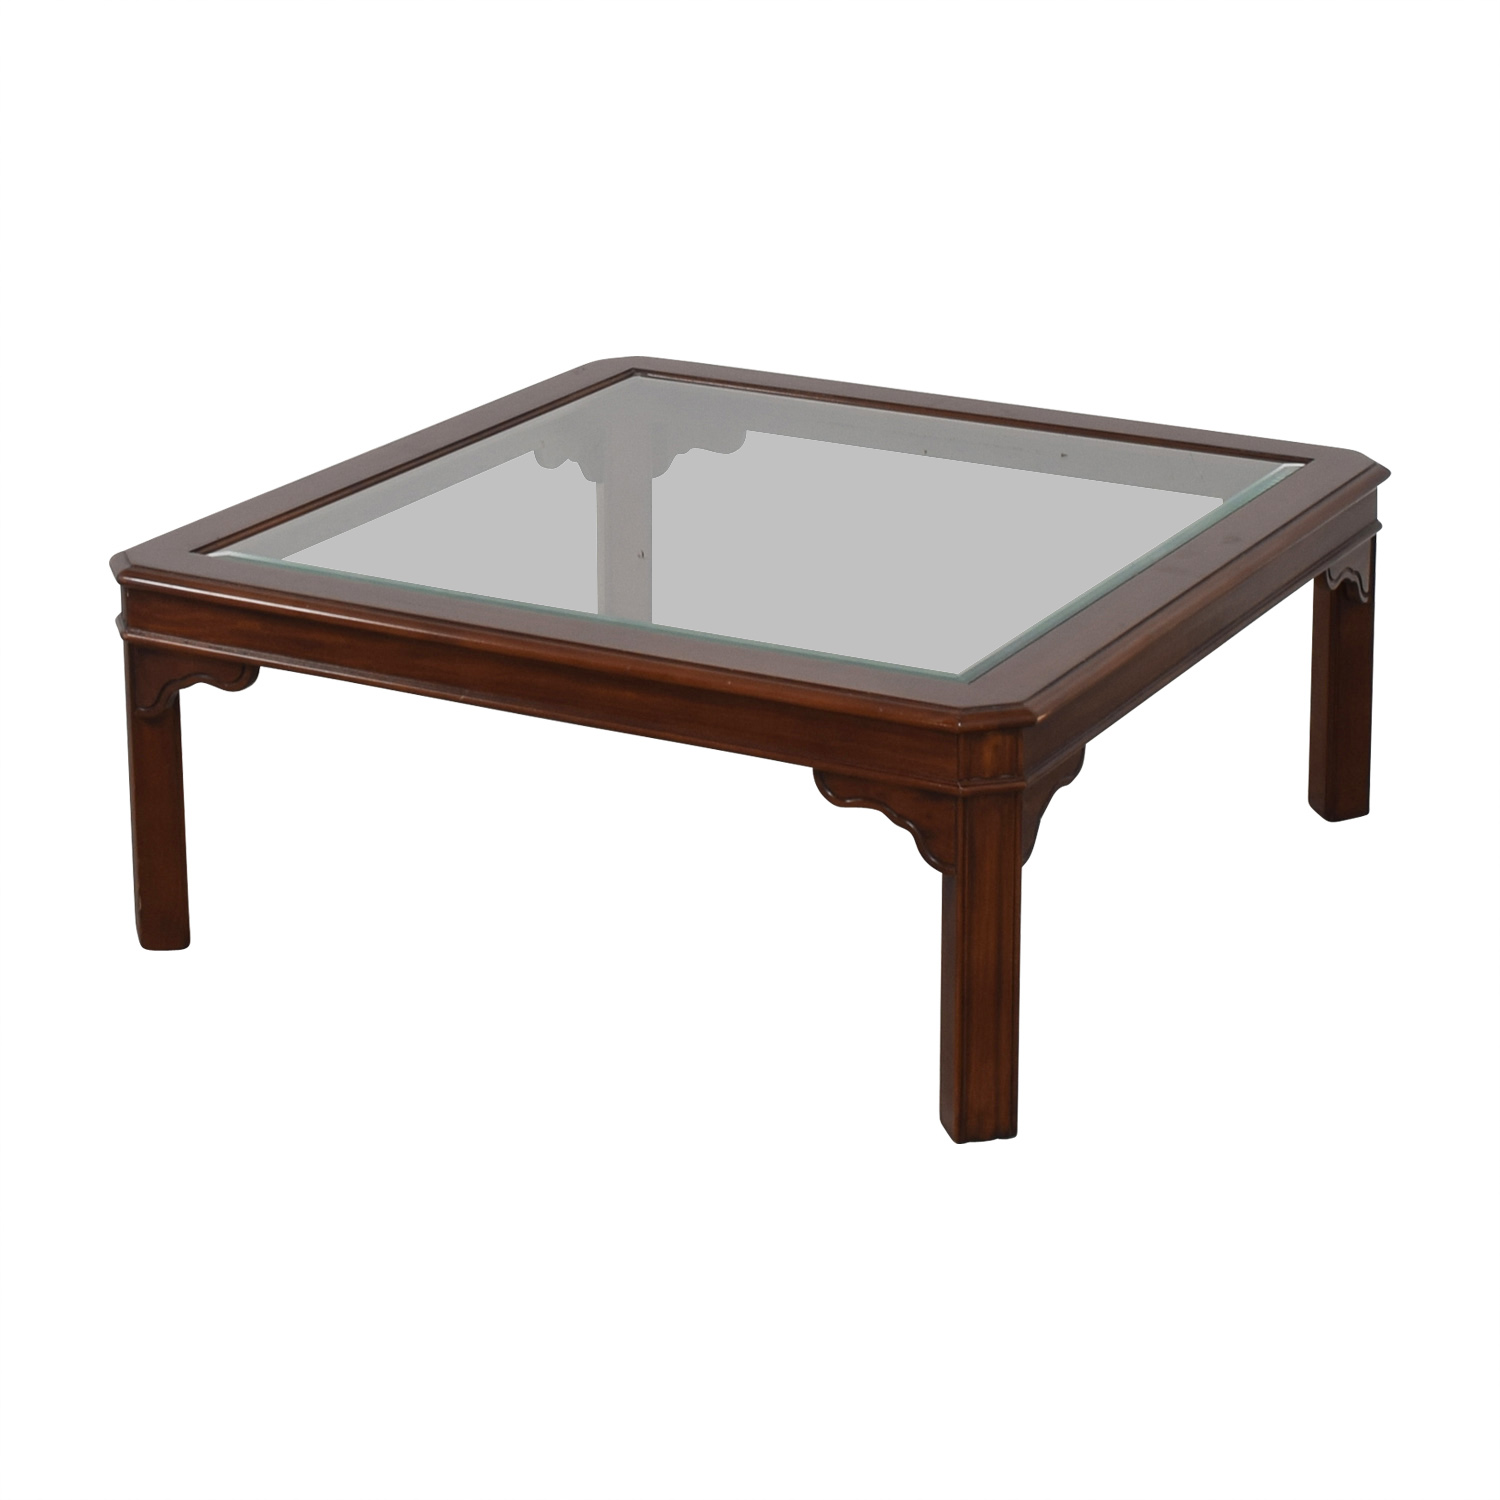 46% off - glass top and wood coffee table / tables Table Coffee Table